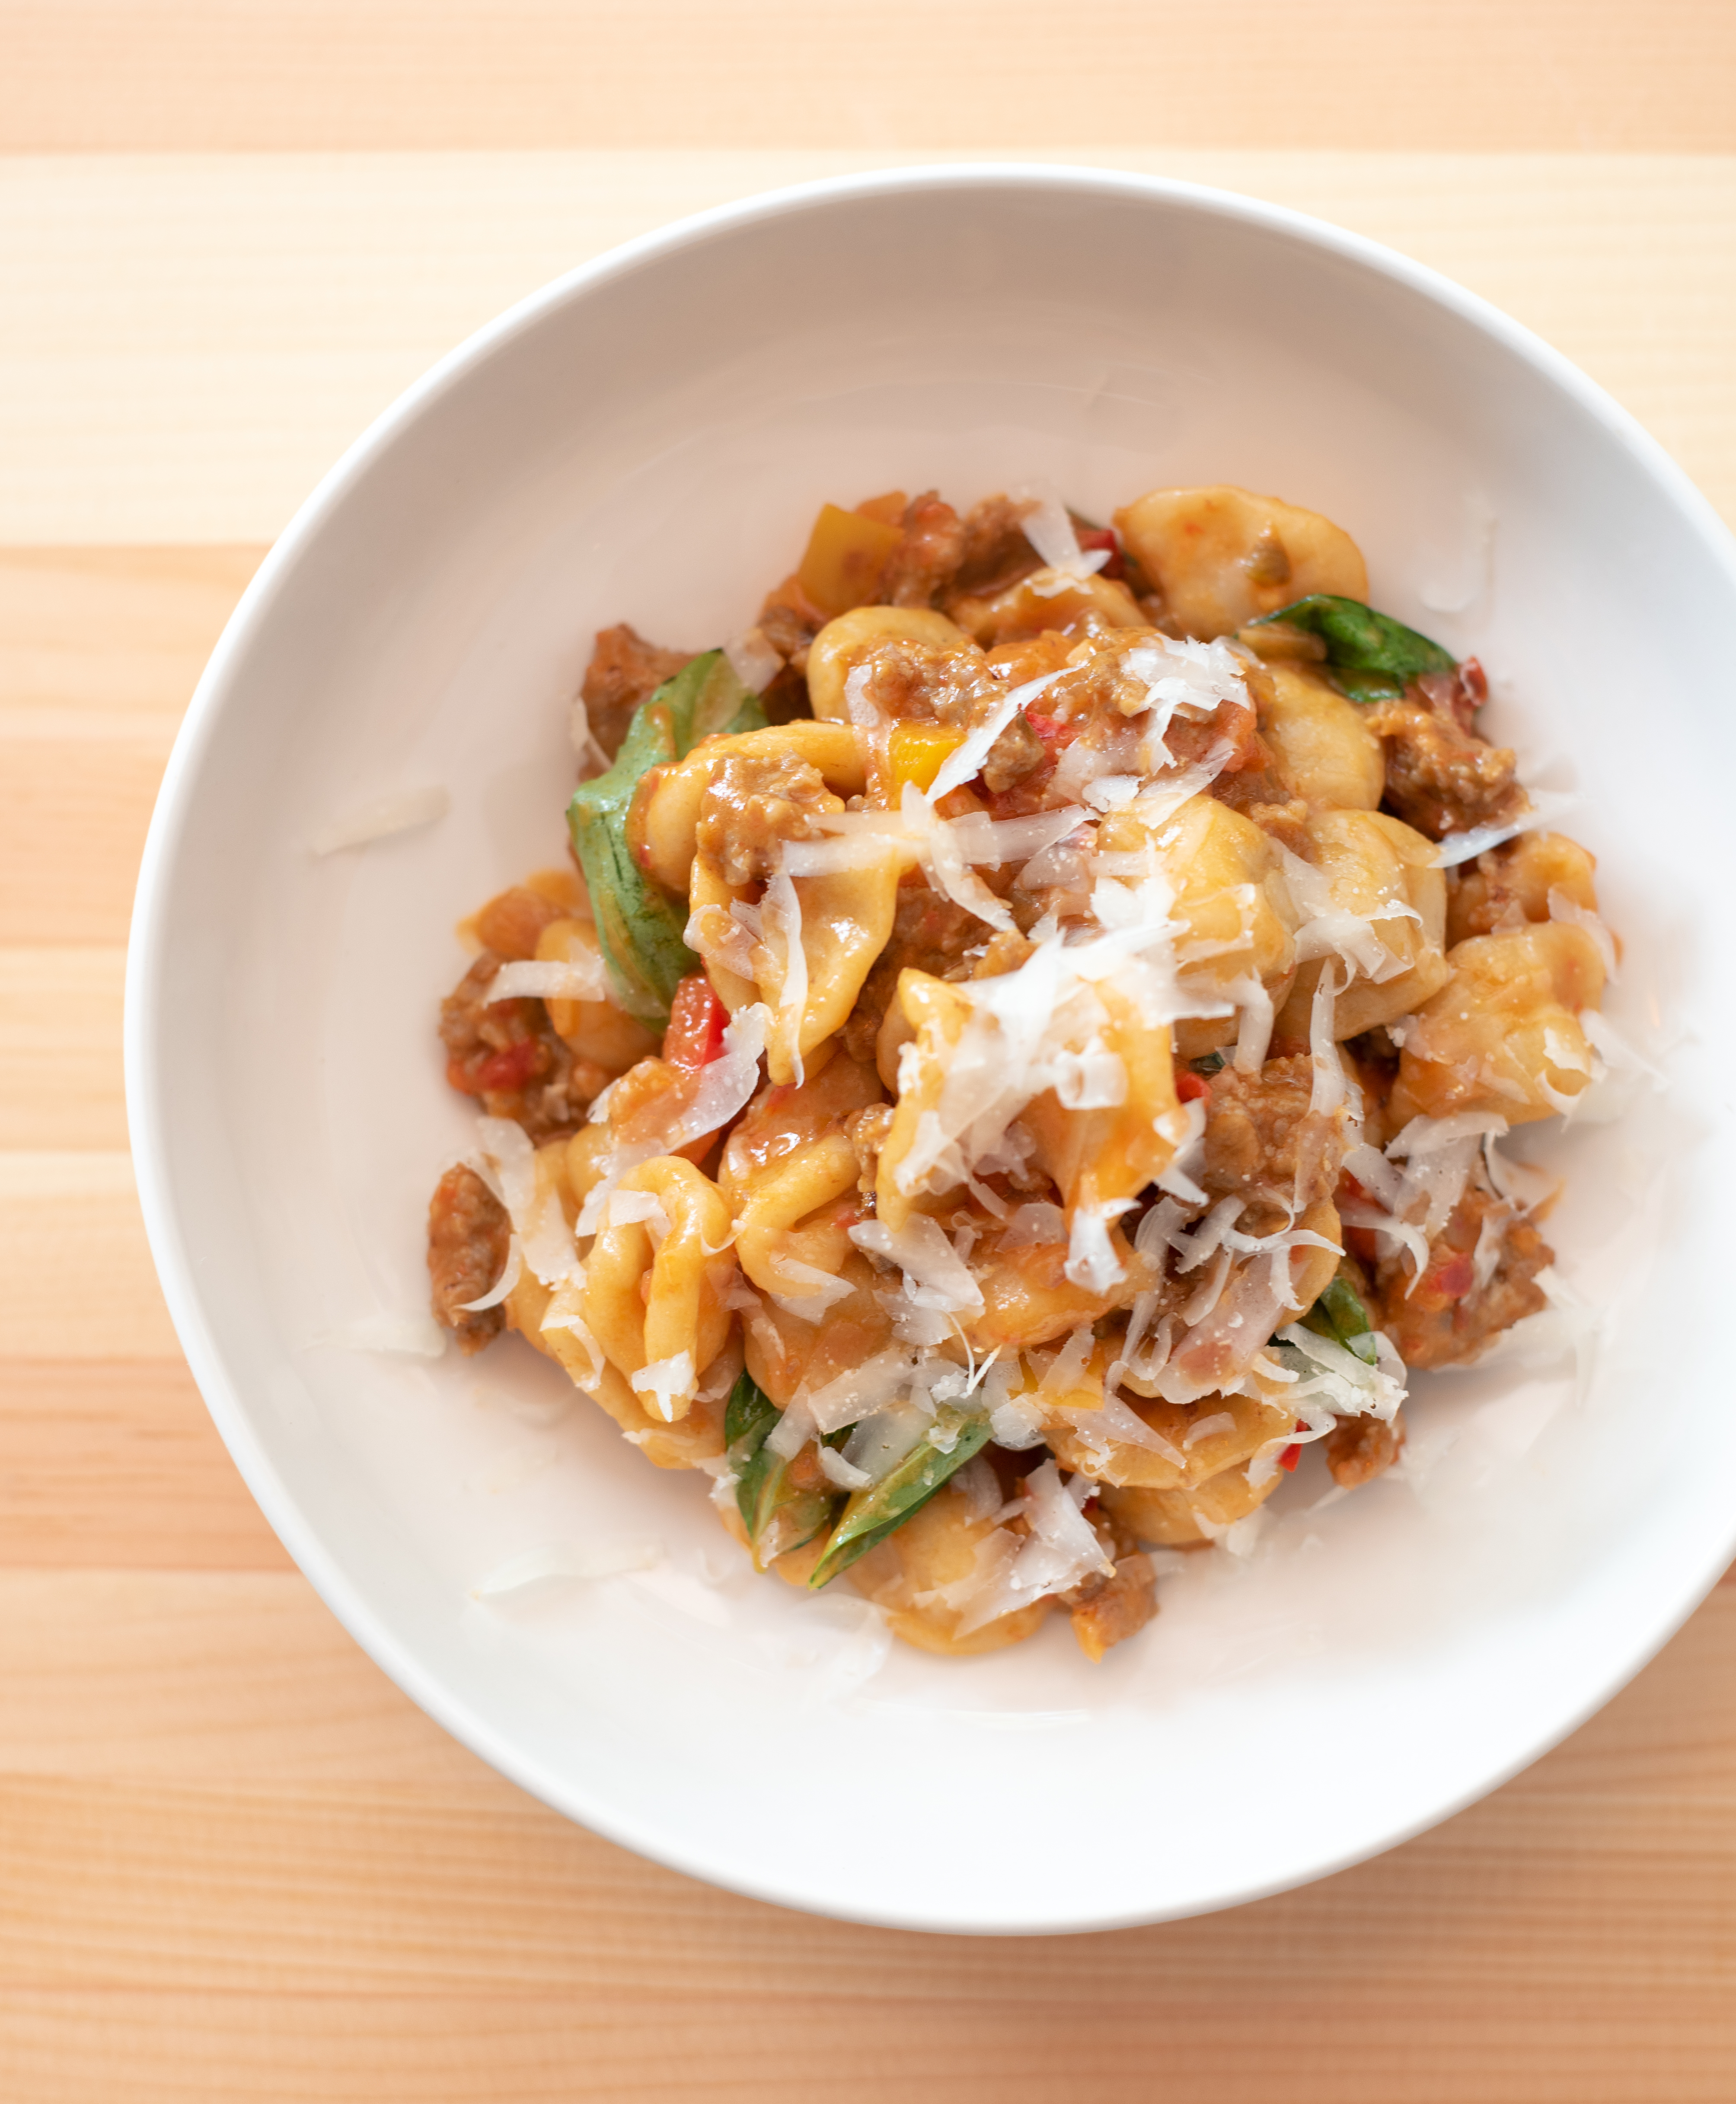 Orecchiette, packed with spicy sausage, pepperonata, and pecorino.